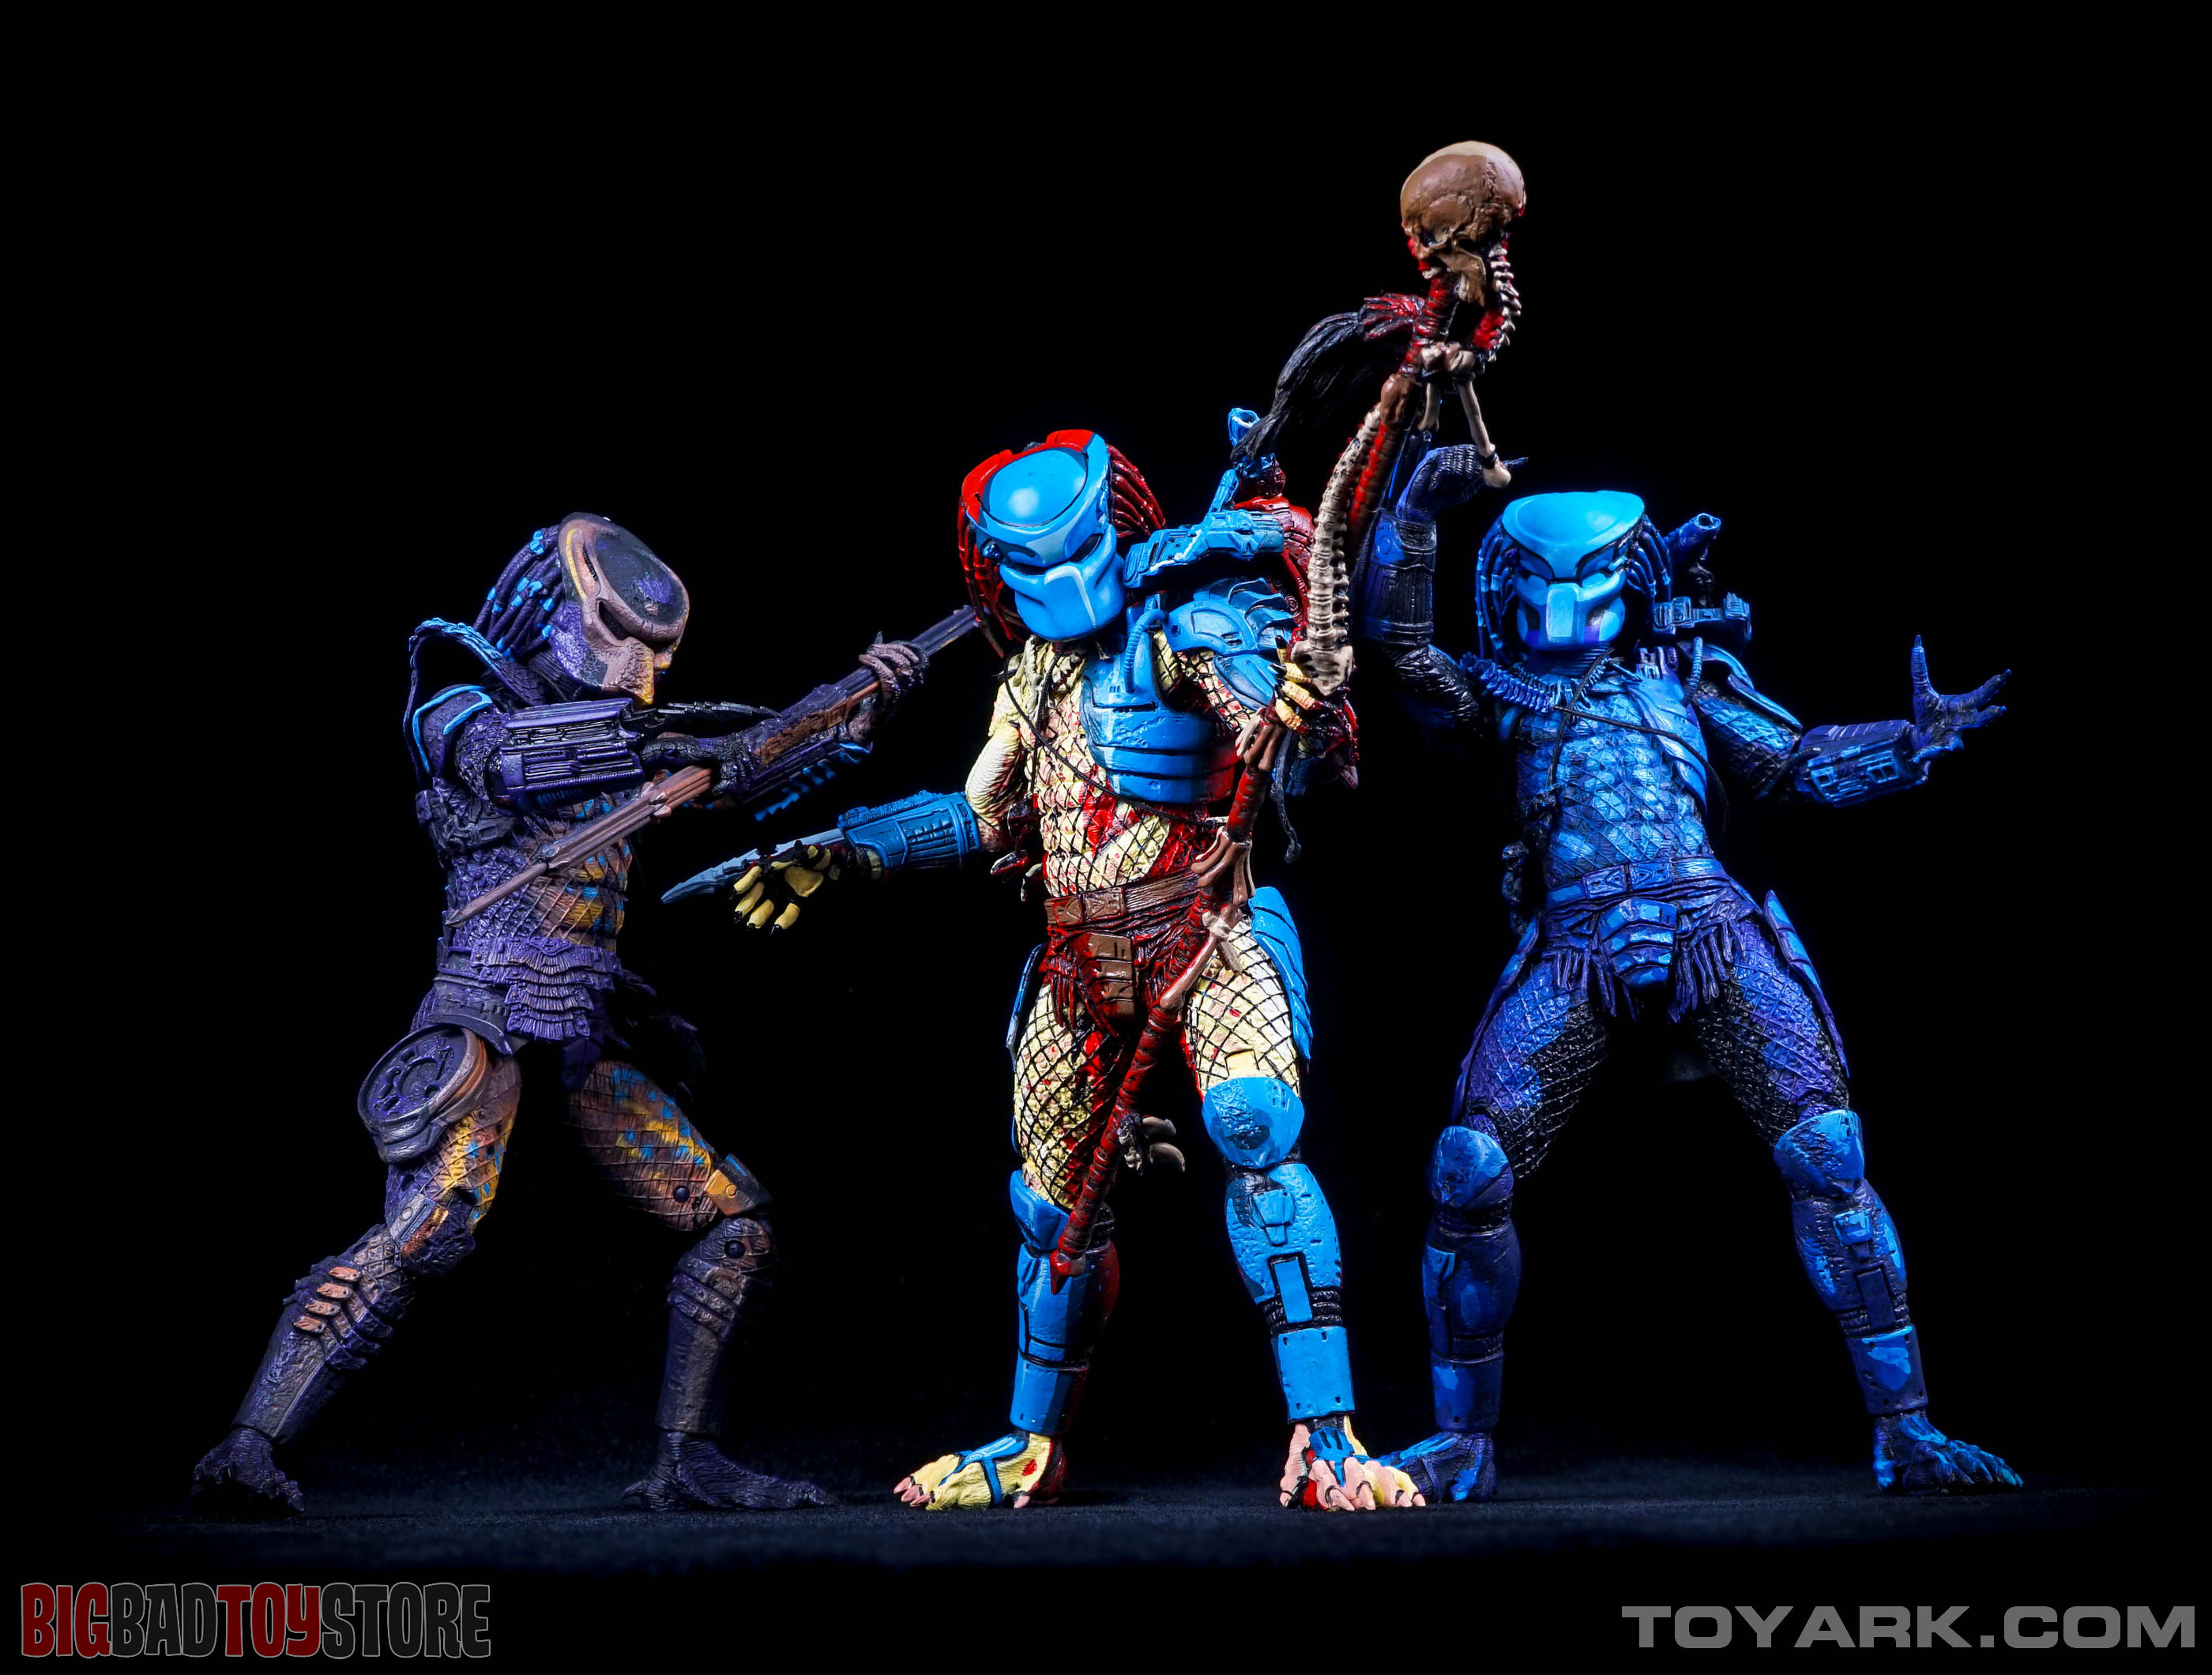 http://news.toyark.com/wp-content/uploads/sites/4/2015/07/NECA-Dark-Horse-Predator-053.jpg